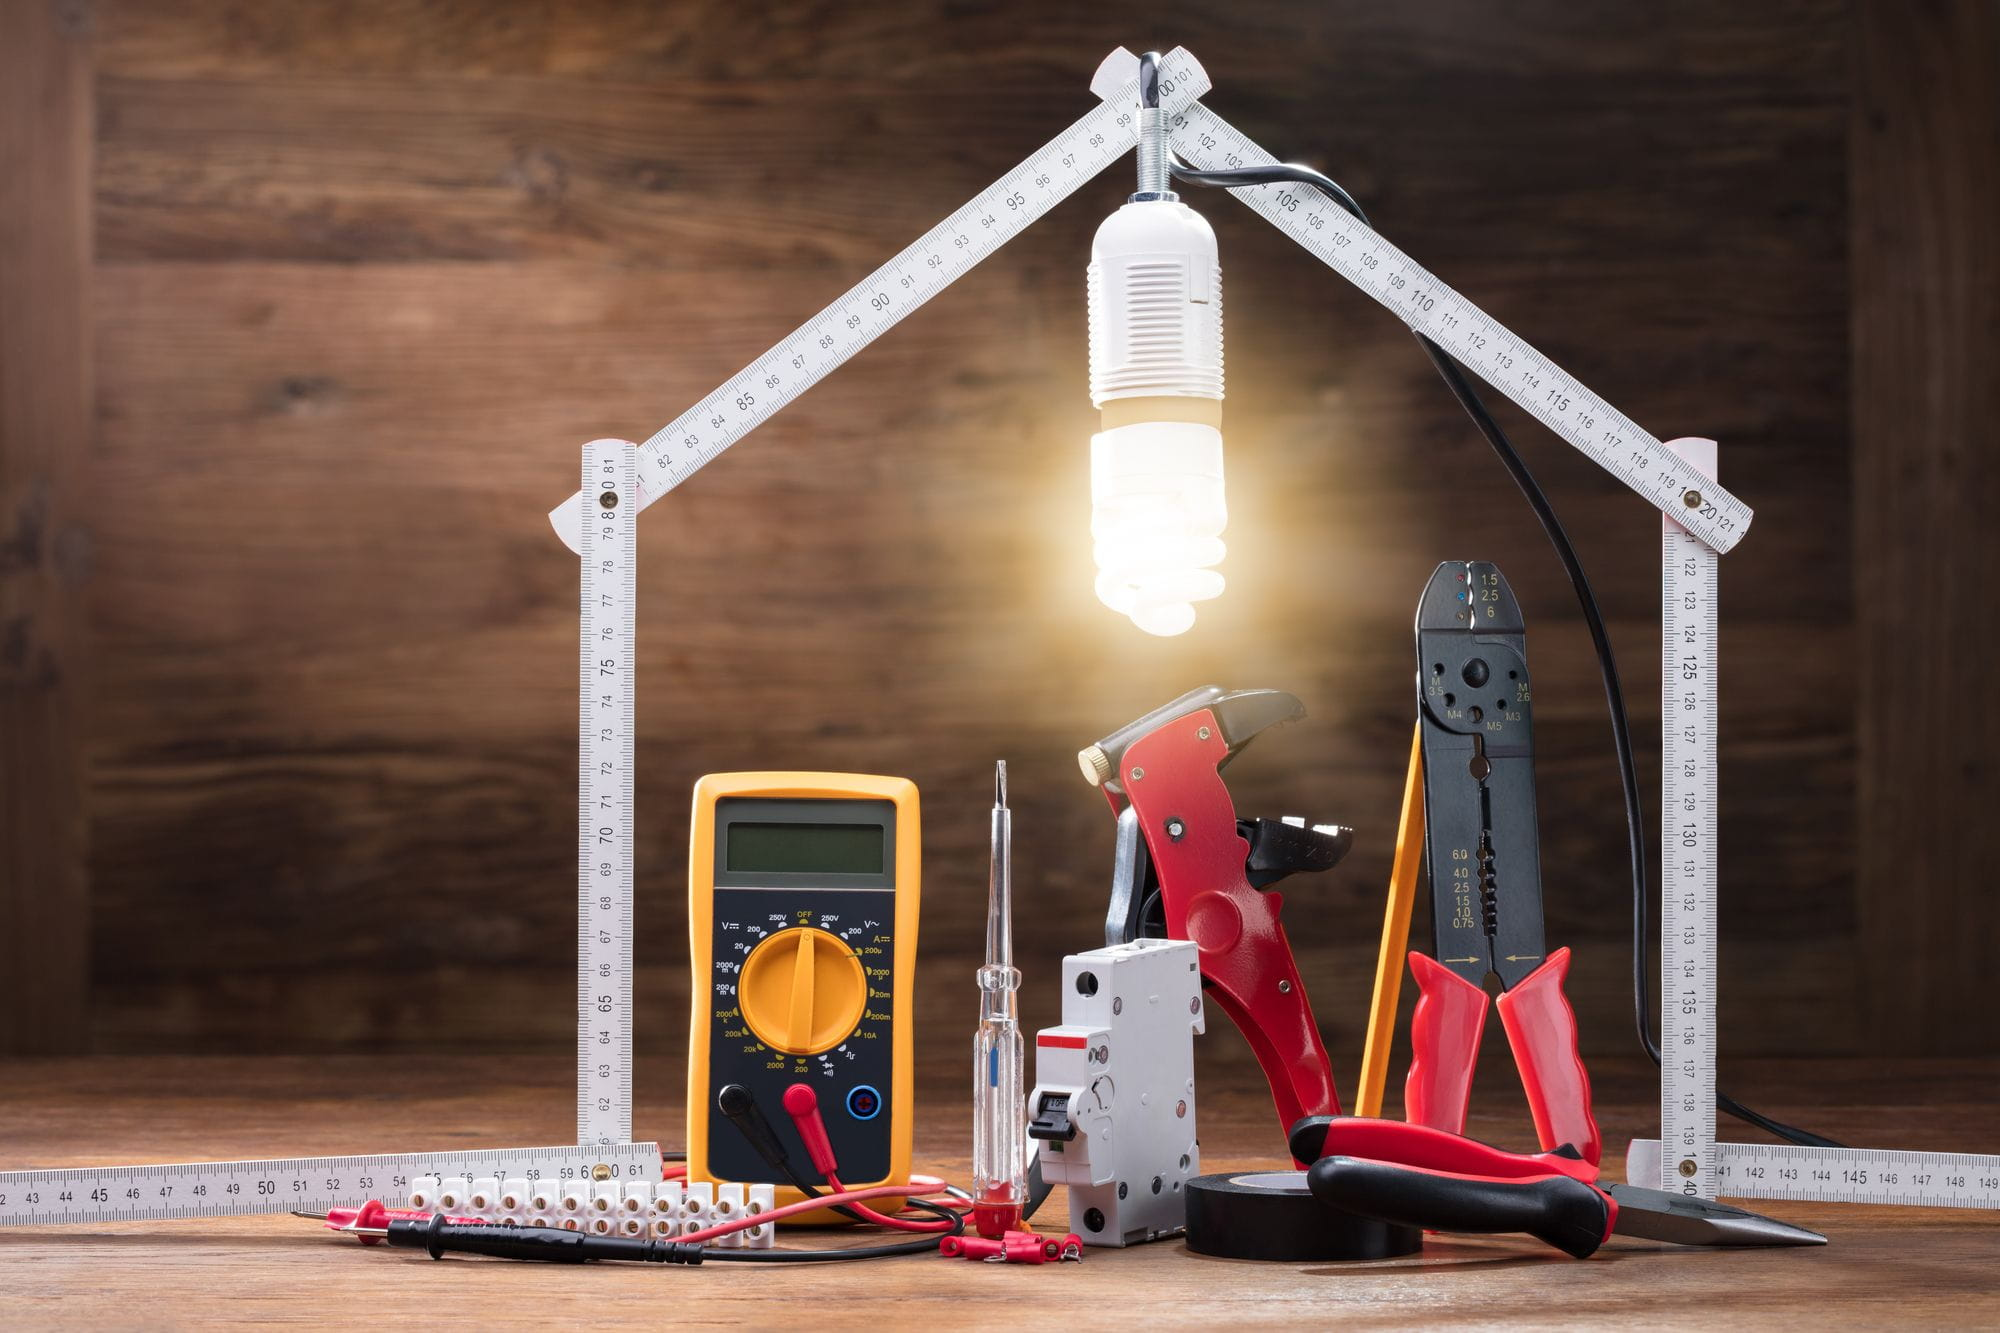 Repair Tools Under The Illuminated House Made With Measuring Tape On The Wooden Table Answering Electrical Questions